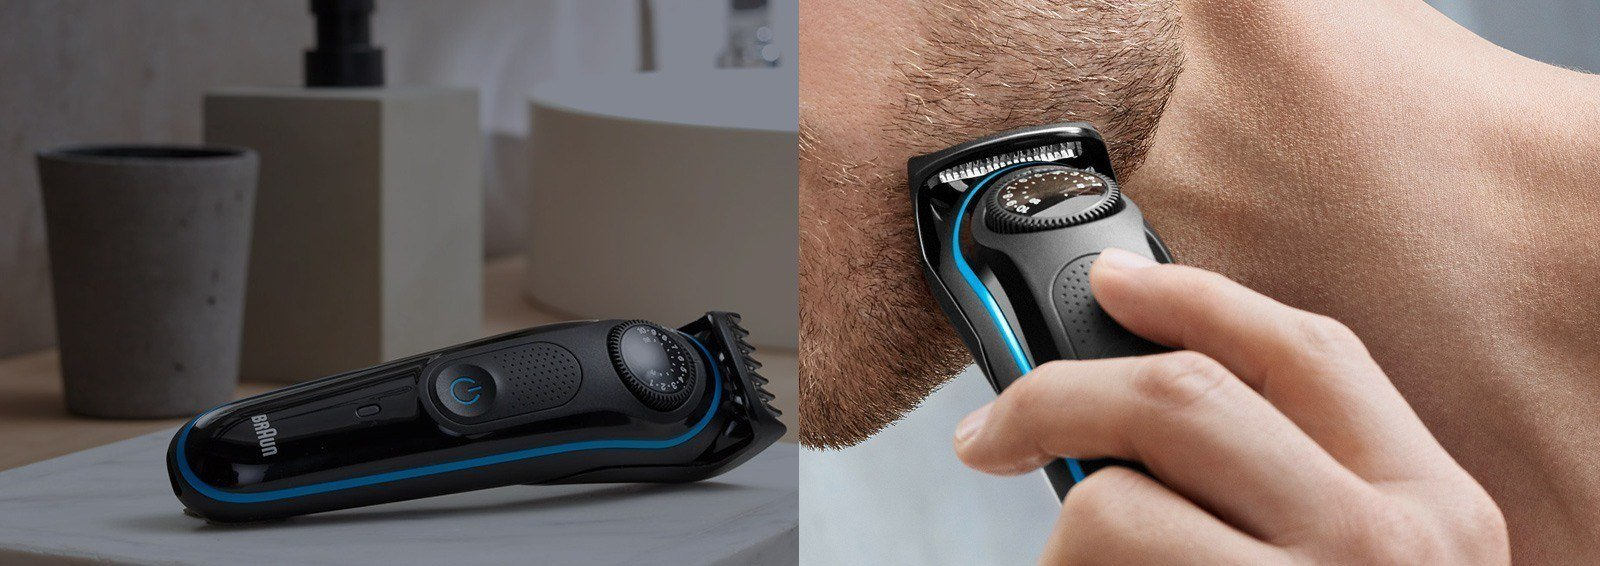 most adjustable beard trimmer